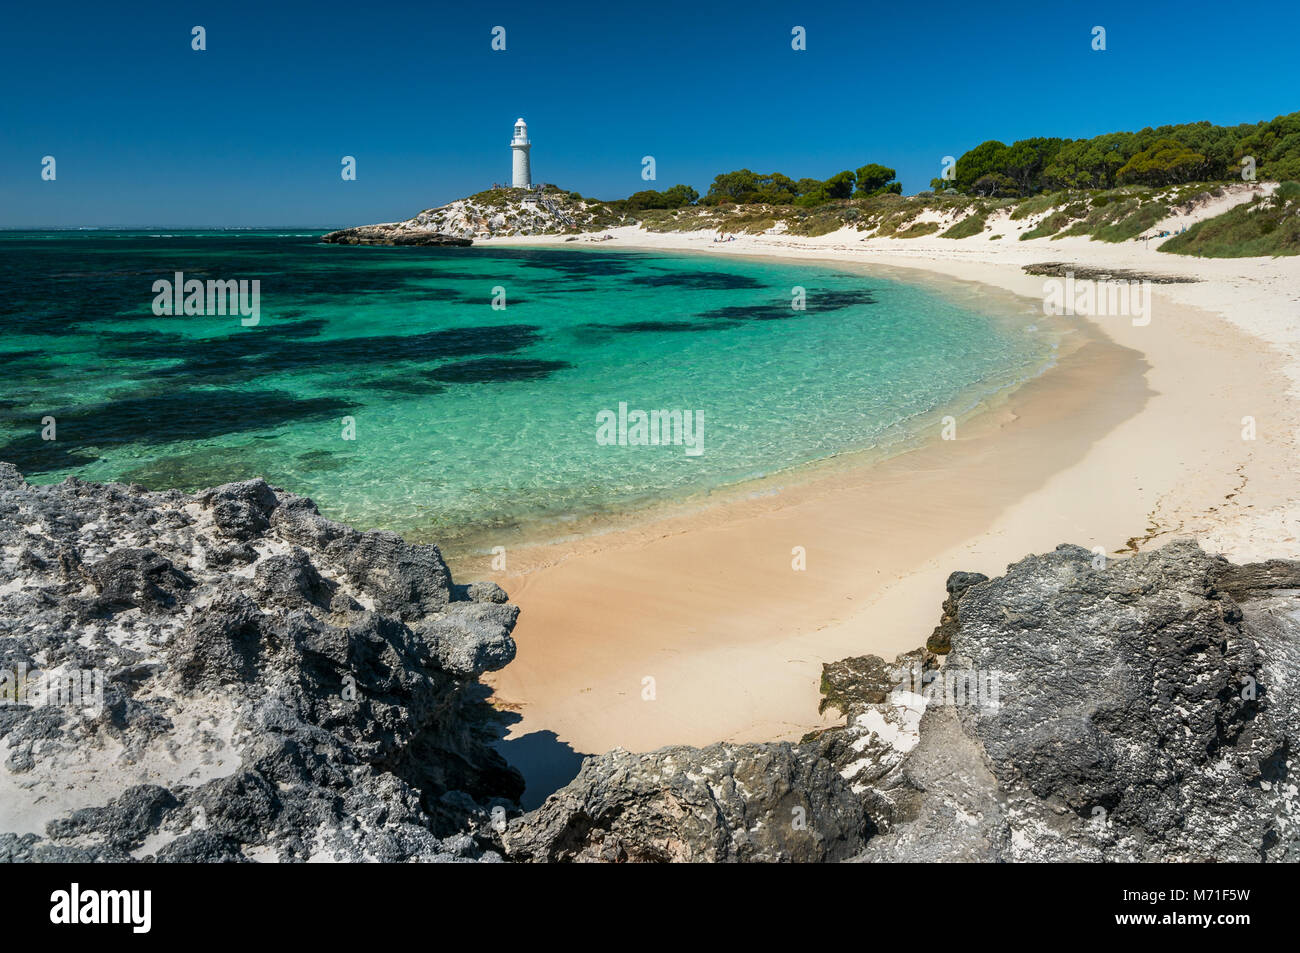 Turquoise ocean at Pinky Beach on Rottnest Island. - Stock Image